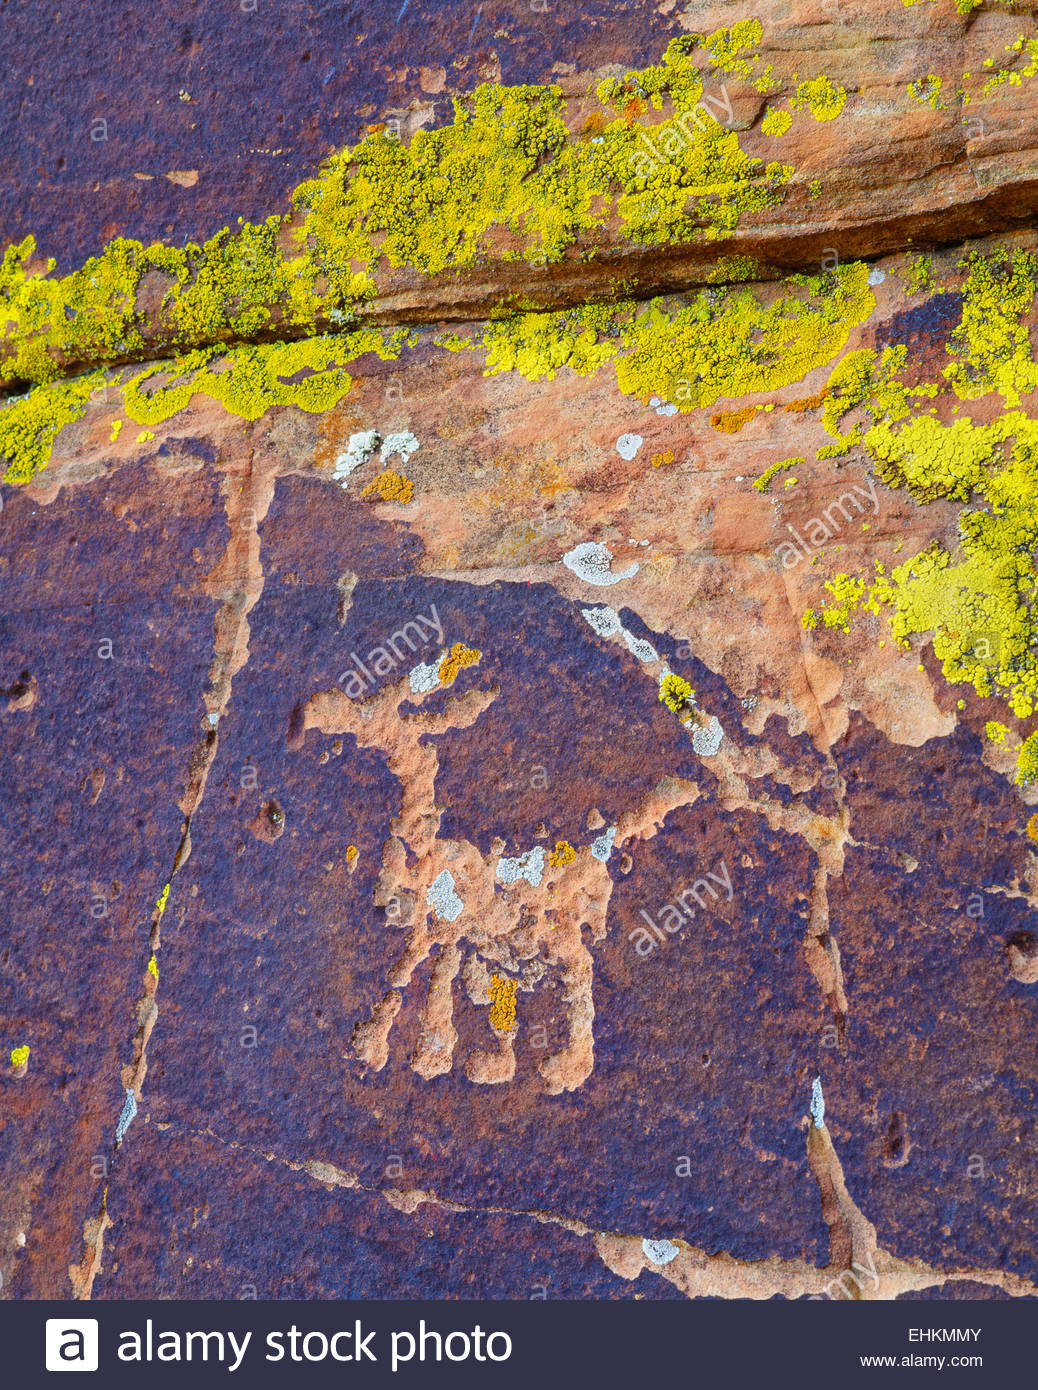 Sinagua culture petroglyph, near Montezuma Well. Coconino National Forest, Arizona. - Stock Image